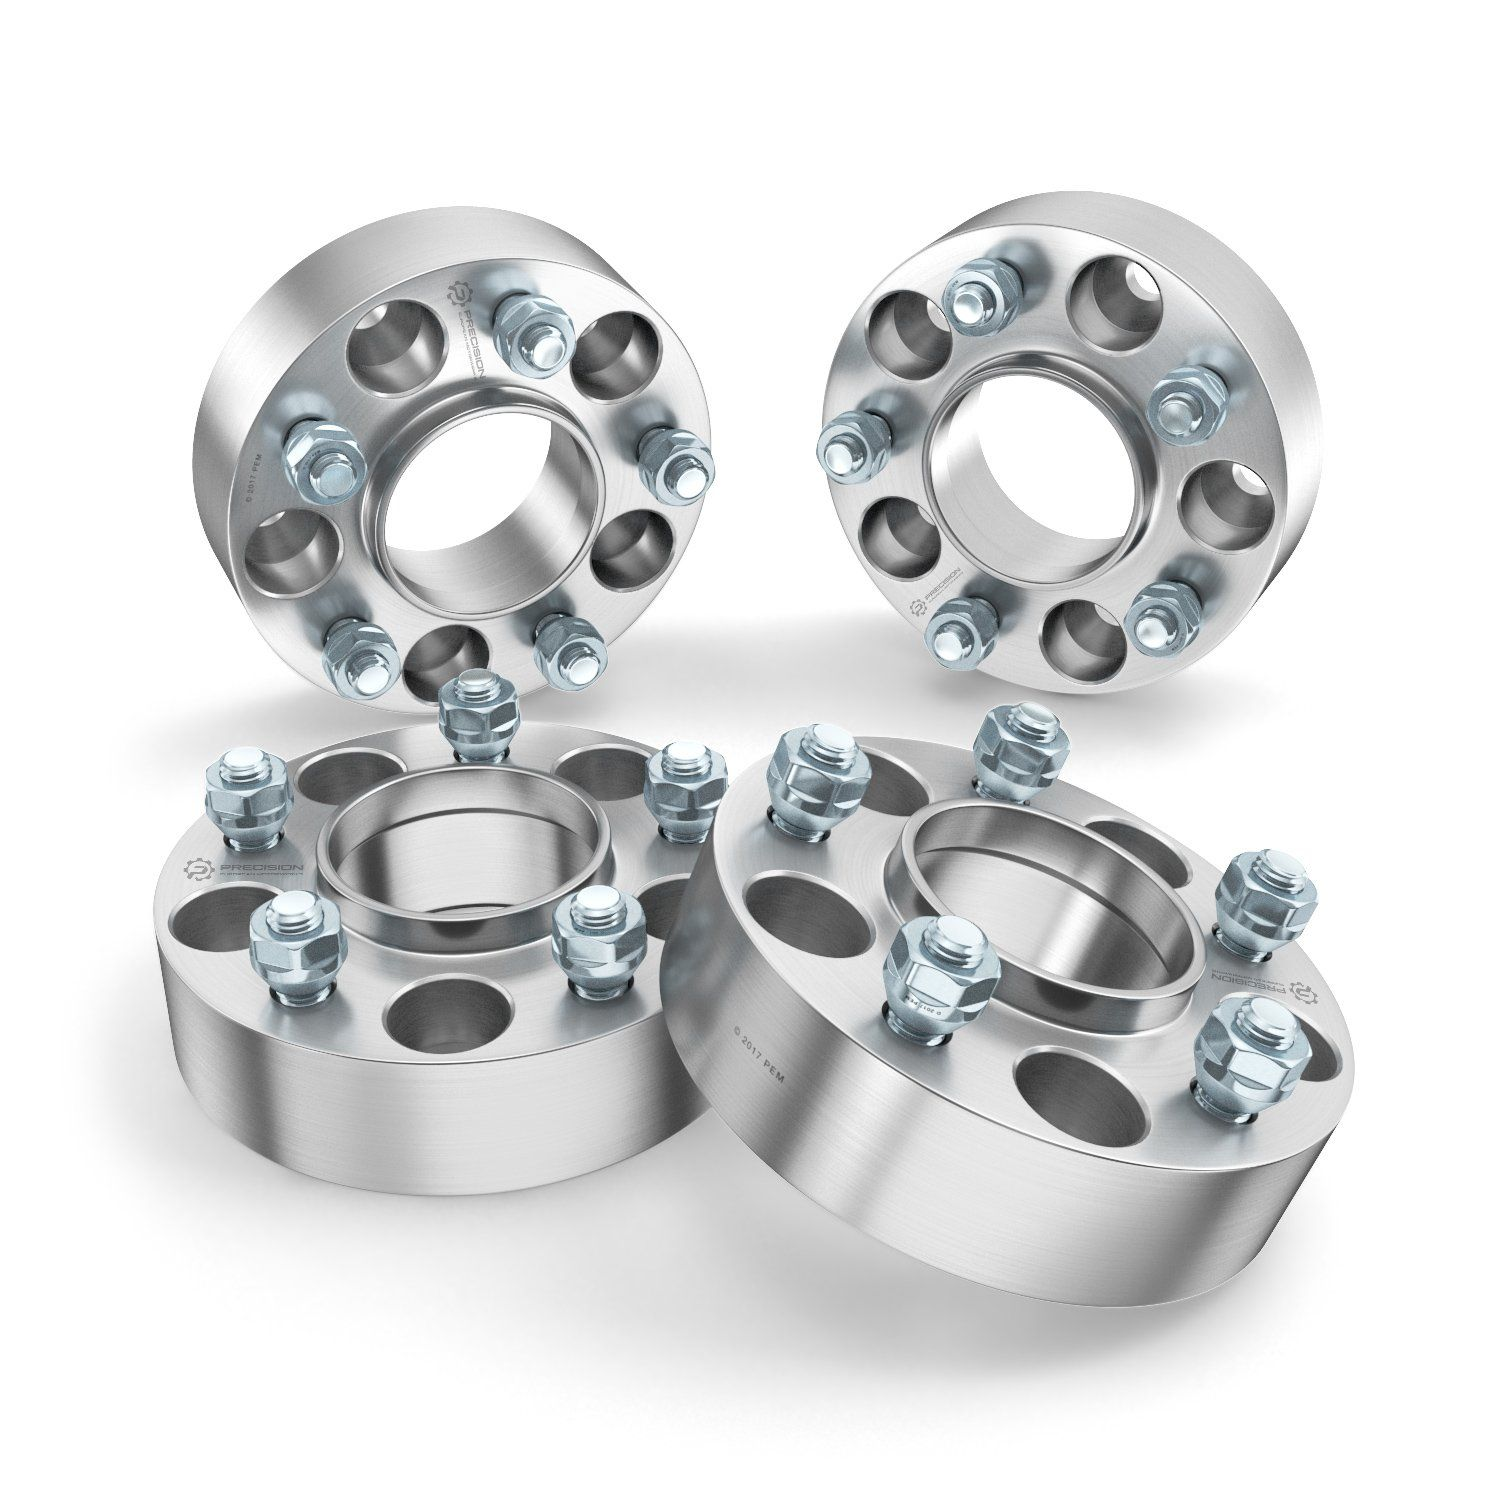 """5x135 to 5x4.5 4pc 1.5/"""" Wheel Adapters Spacers - 14x2 Coarse Studs 5x114.3"""